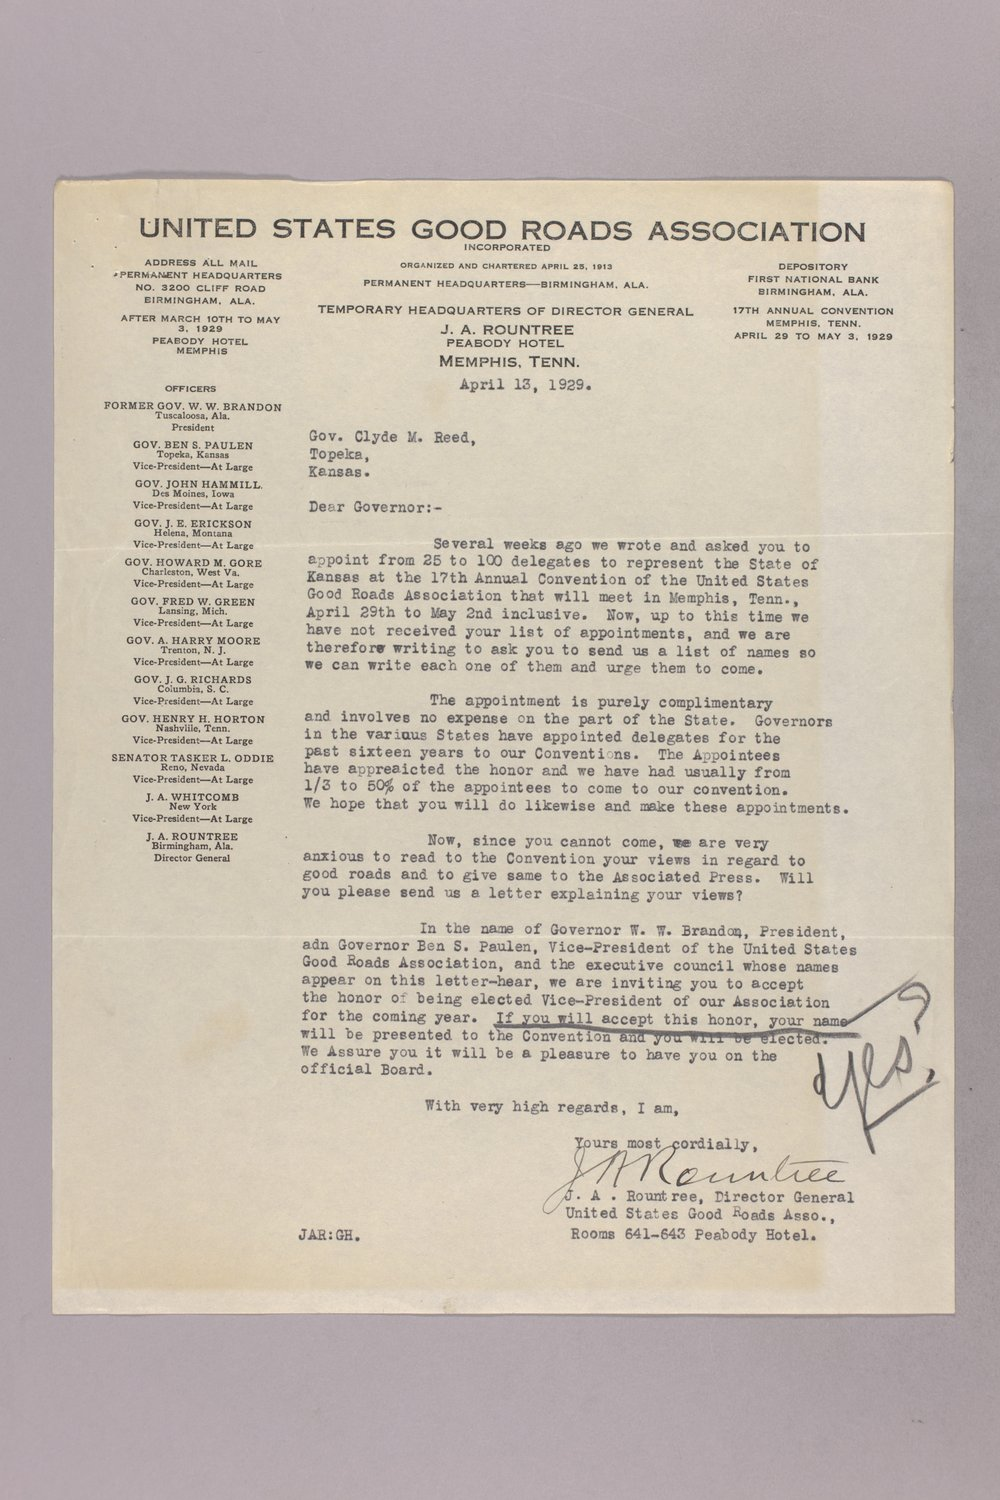 Governor Clyde M. Reed correspondence, honorary appointments - 5